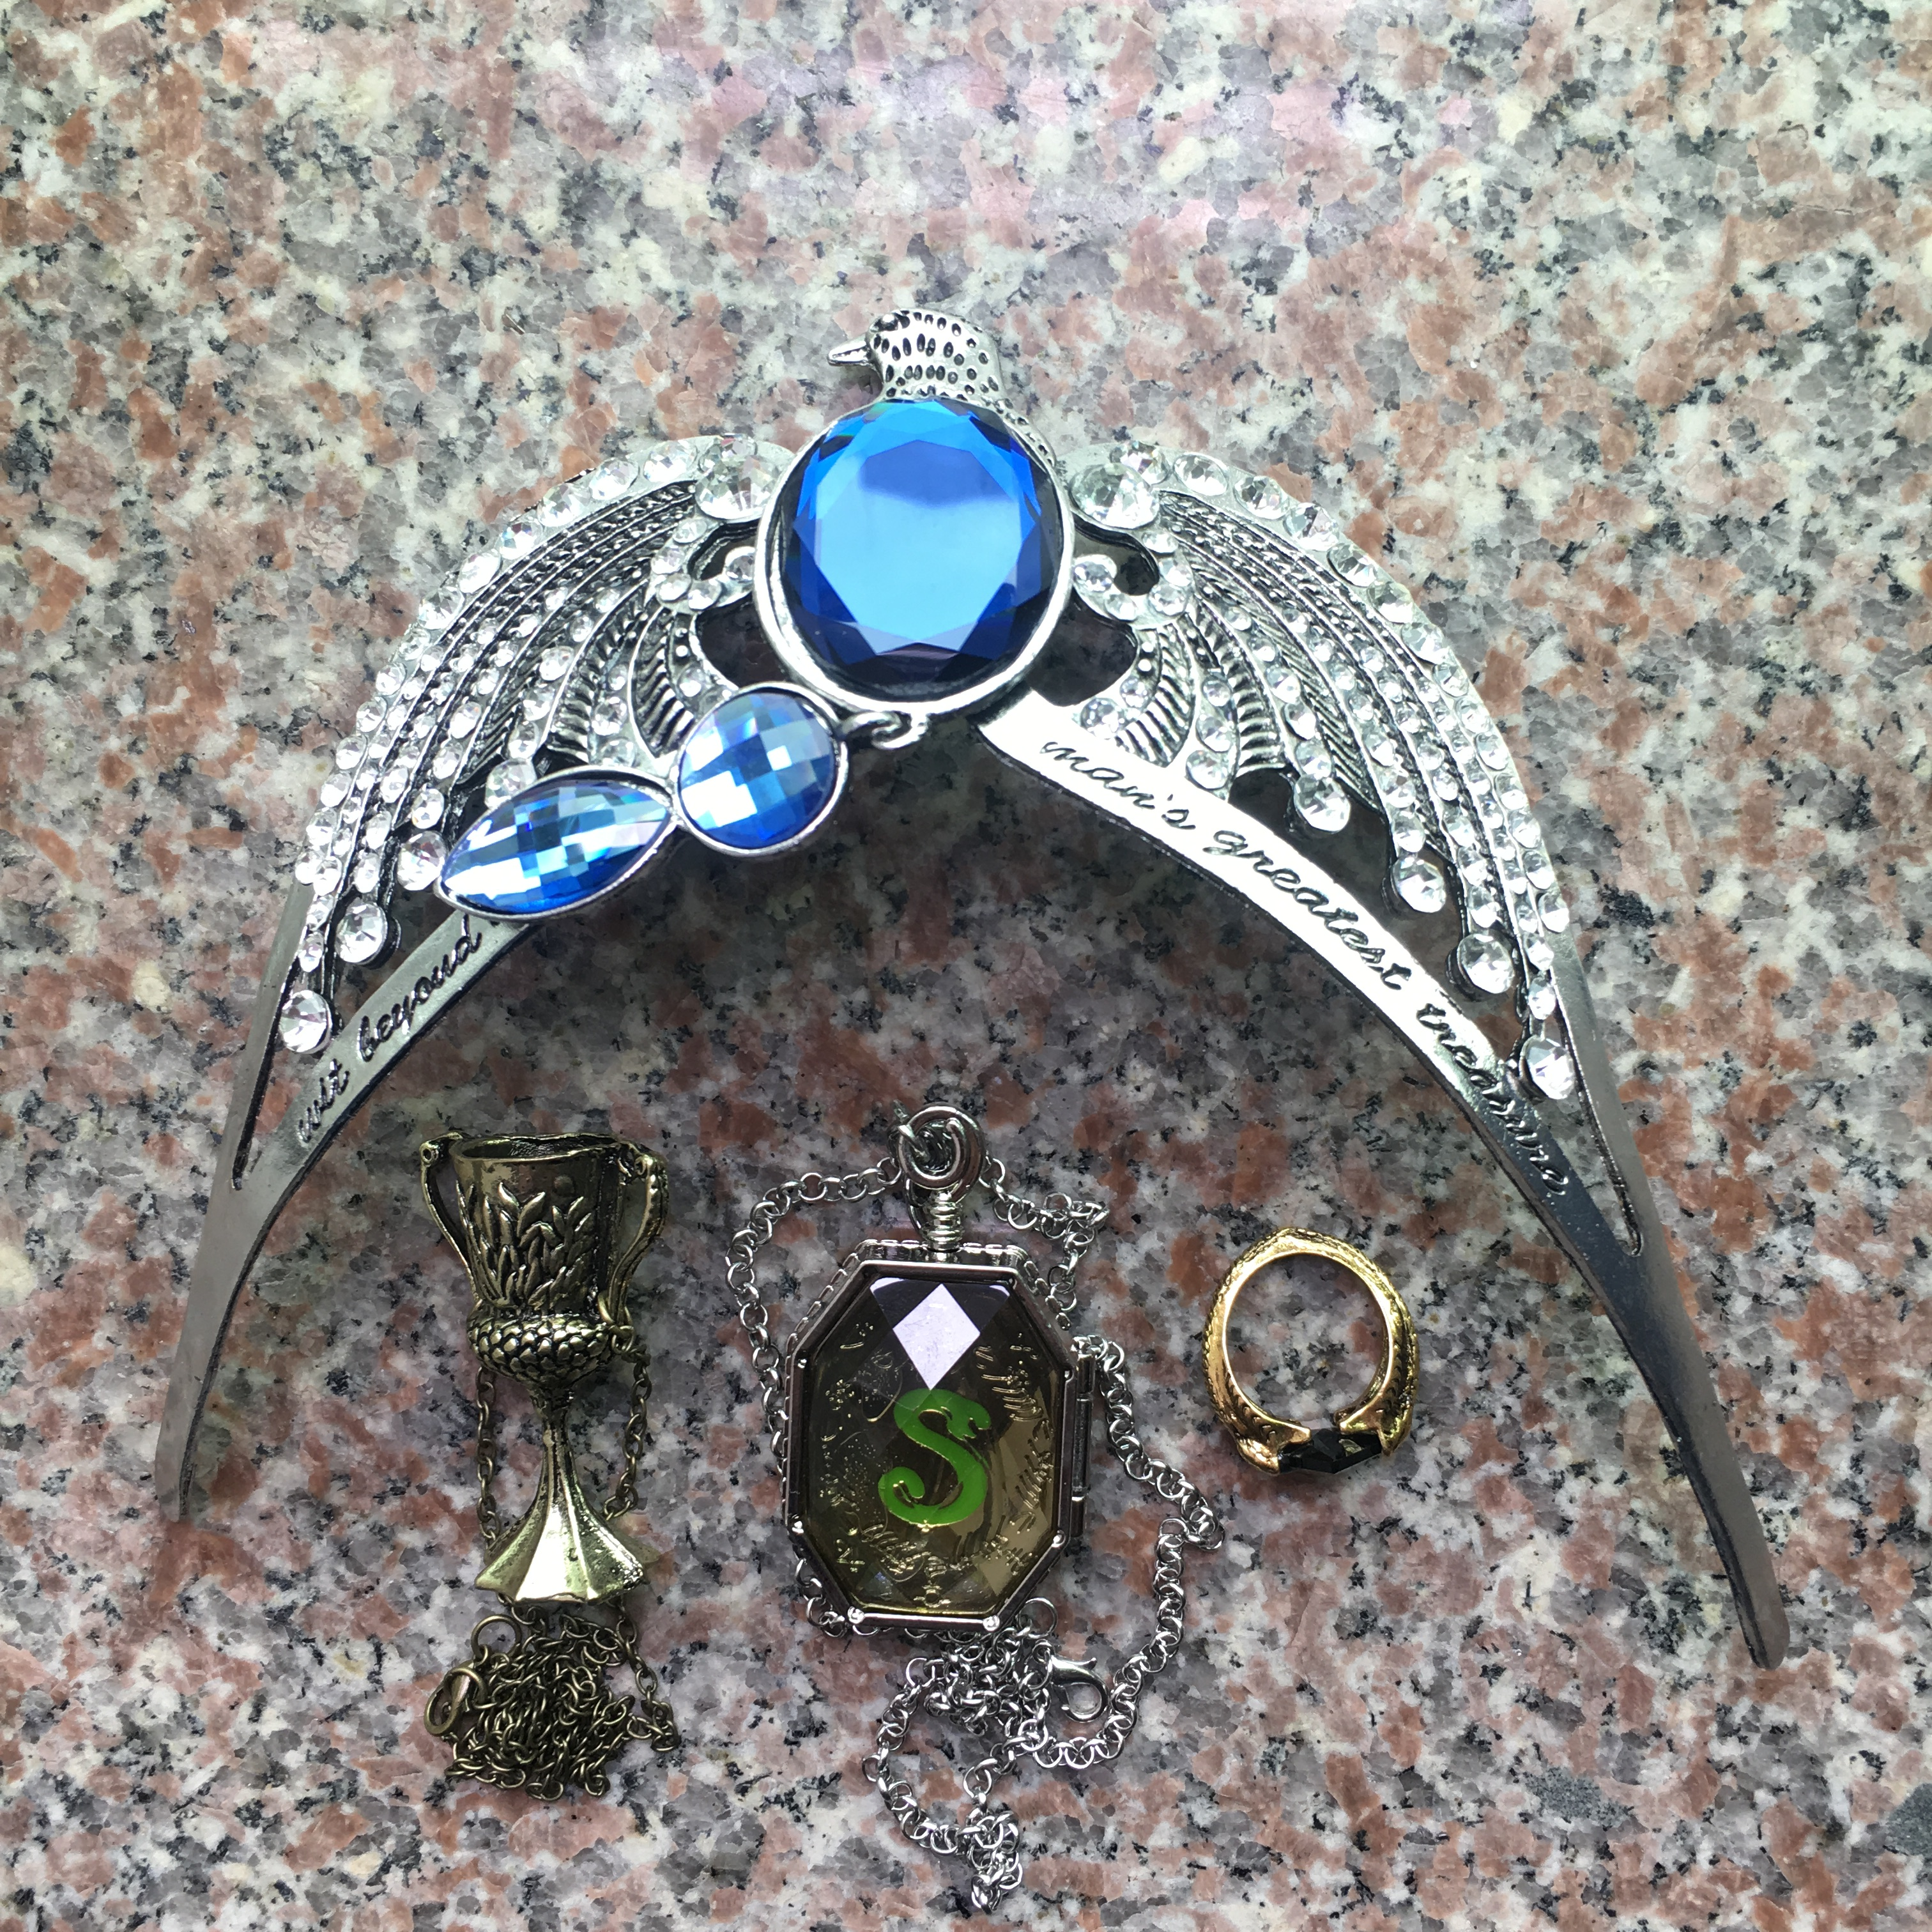 Big Marvolo Gaunt Ring Salazar Slytherin Locket Hufflepuff's Goblet Diadem Of Ravenclaw Voldemort Horcrux 4pcs Set Costume Props